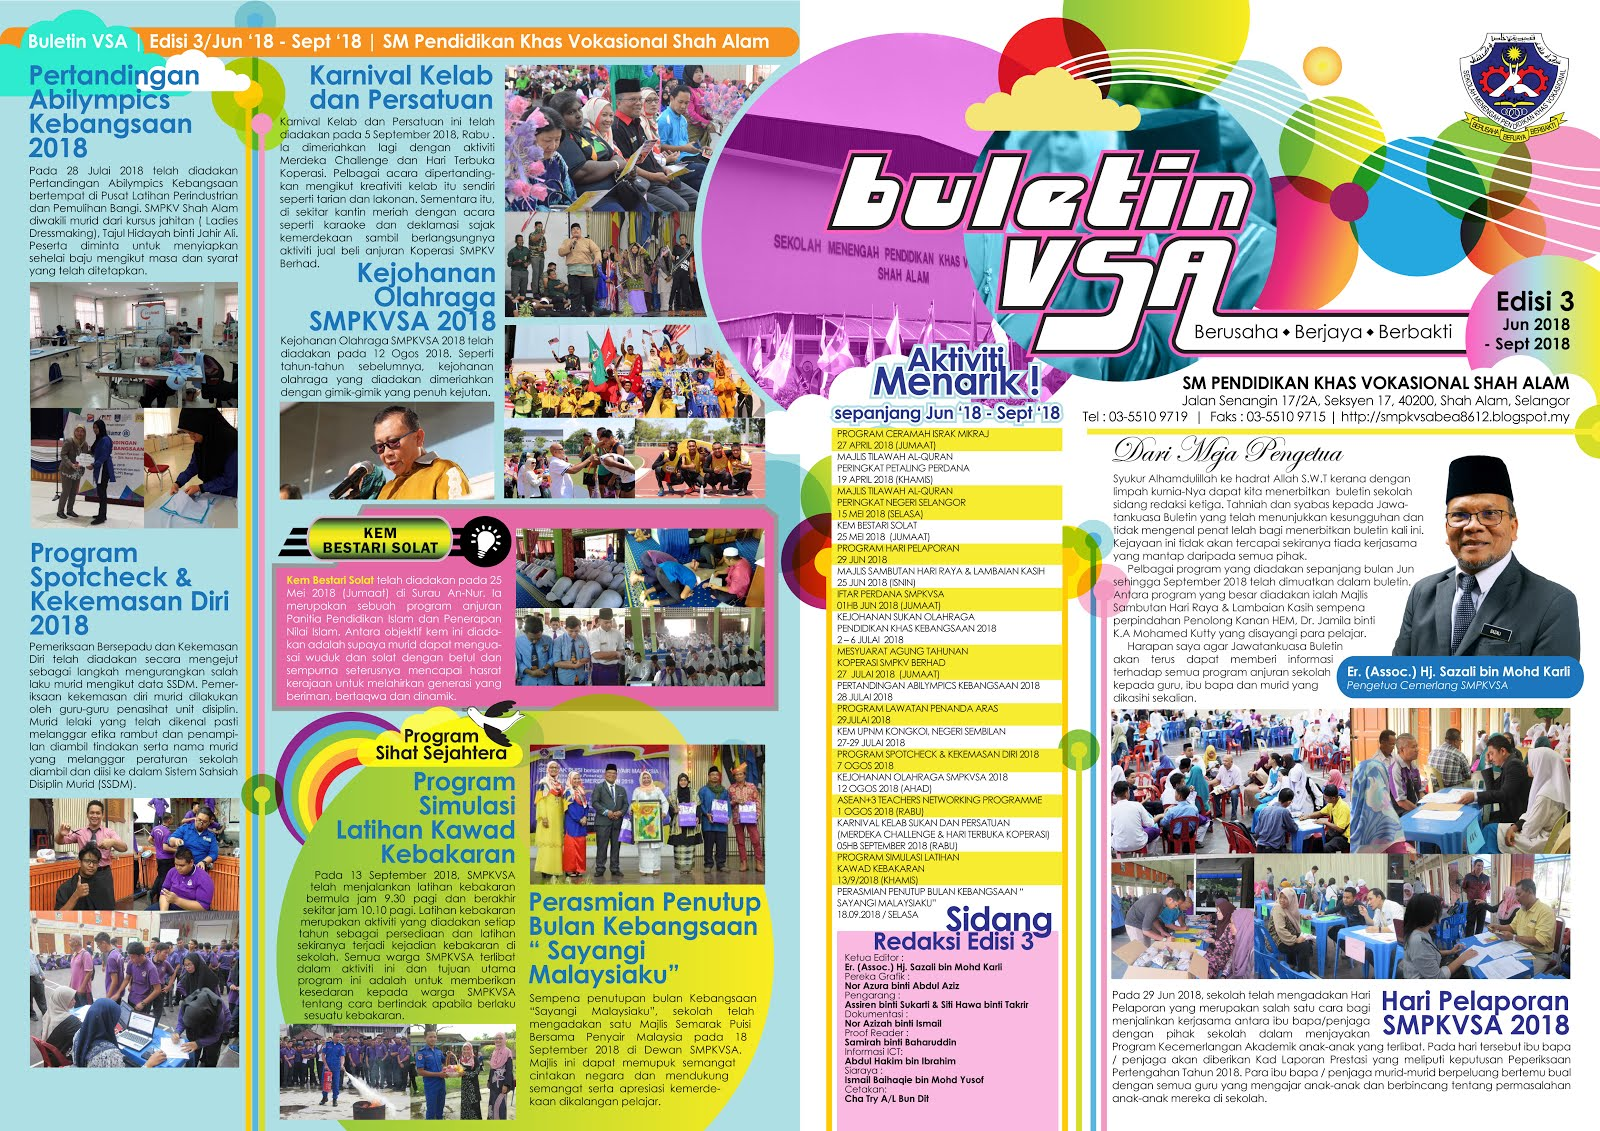 Buletin Edisi 3 2018 (Jun-September 2018)